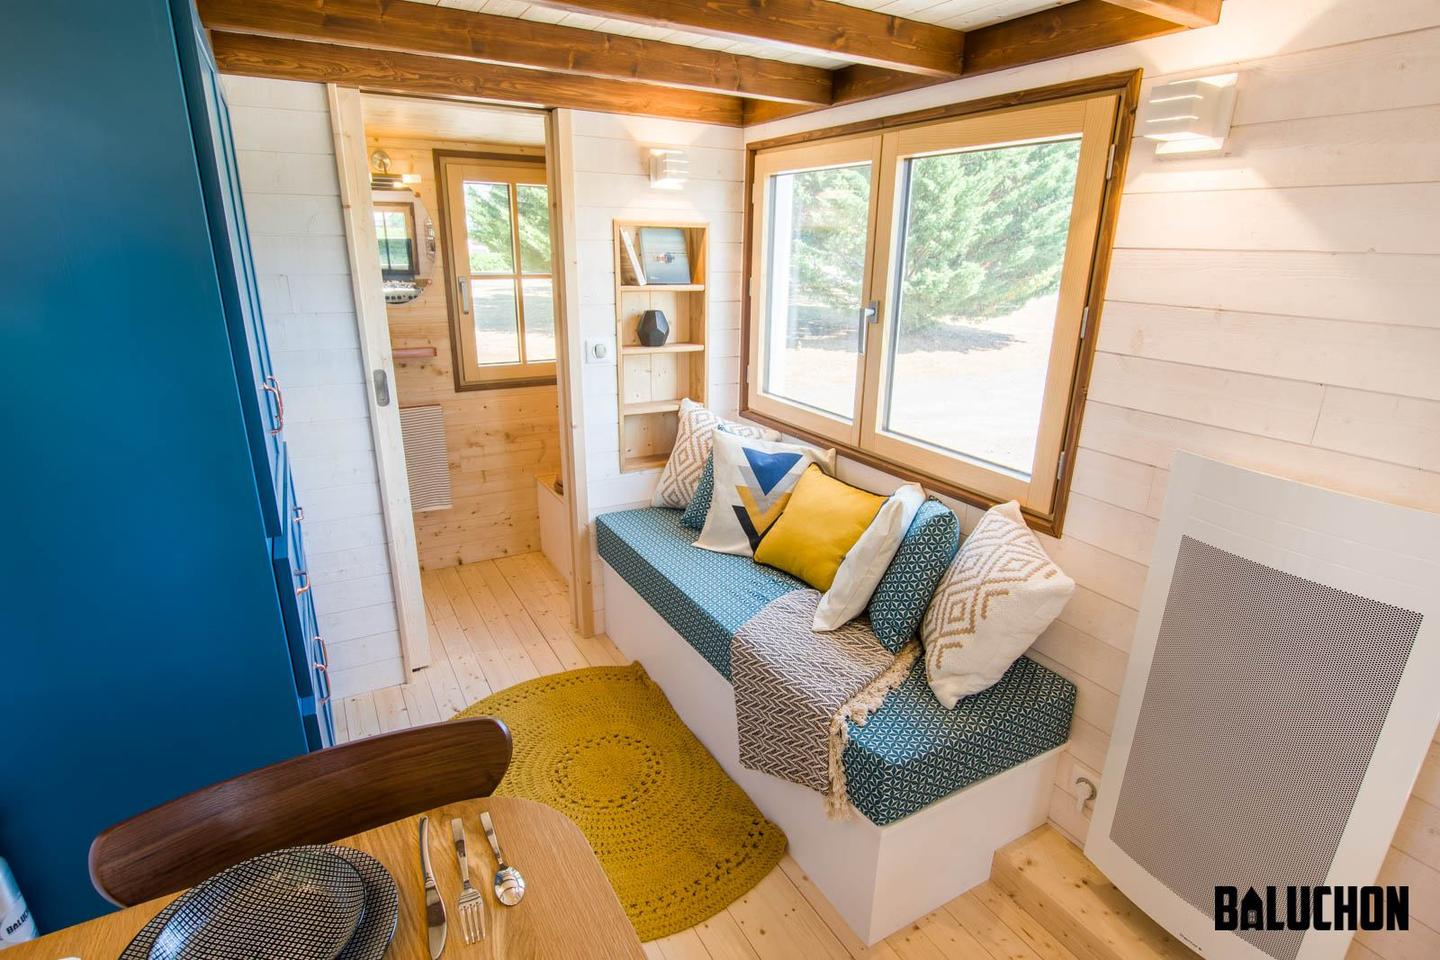 The Solaris tiny house has a small living area that includes a sofa